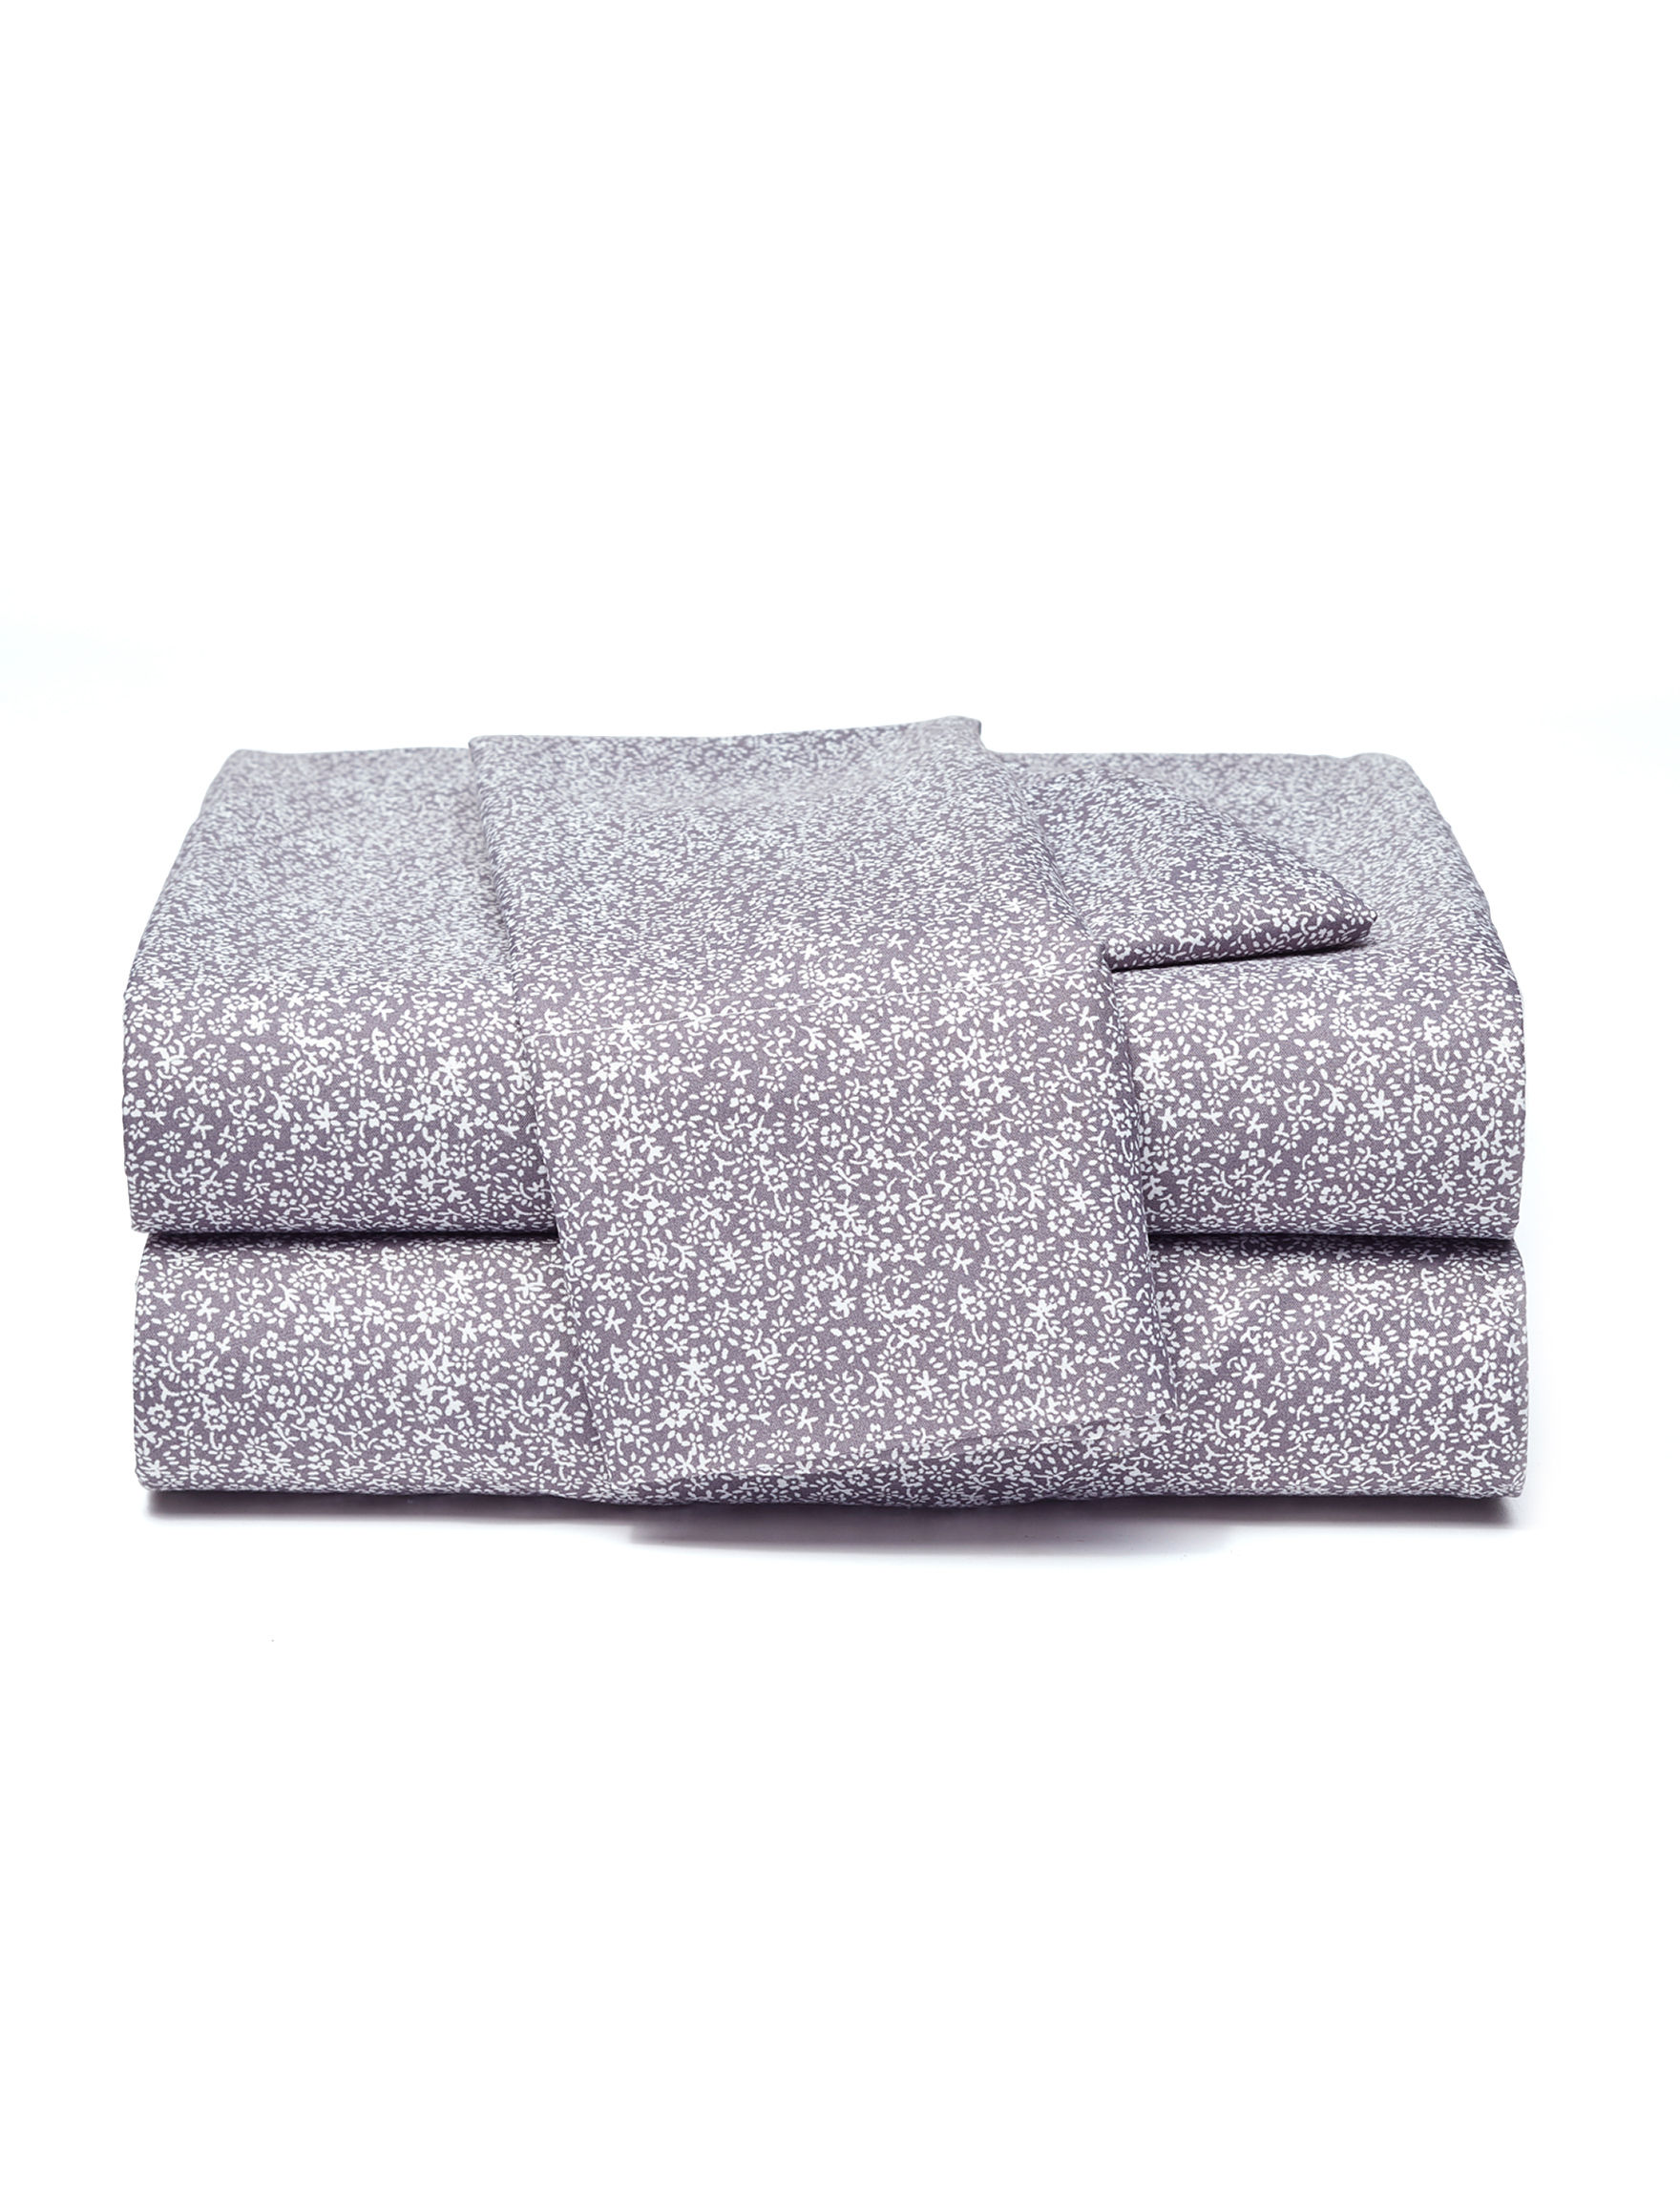 Great Hotels Collection Charcoal Sheets